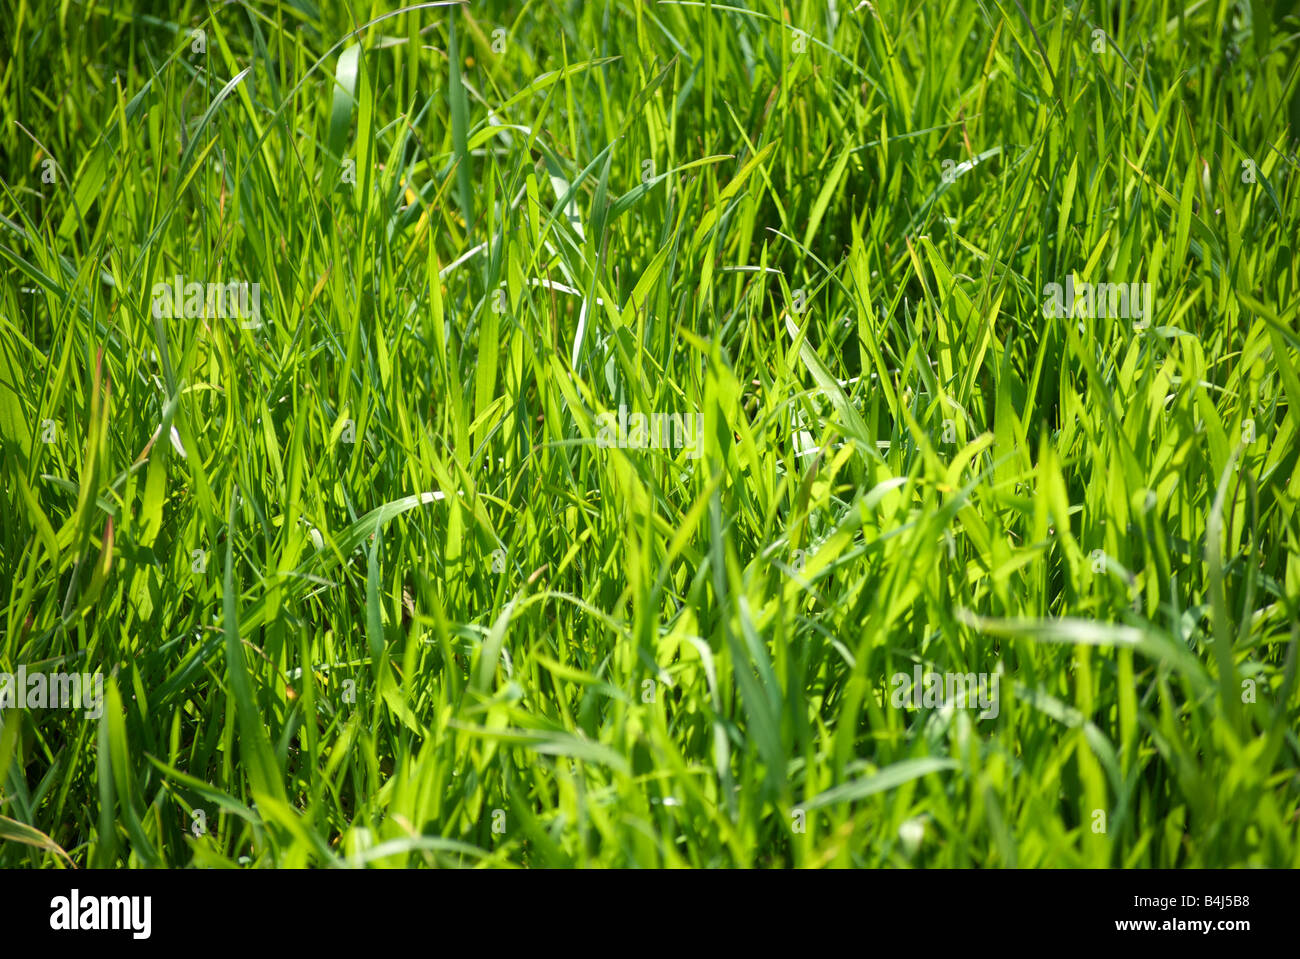 Sunlight shines strongly on a patch of green medium length grass. Stock Photo